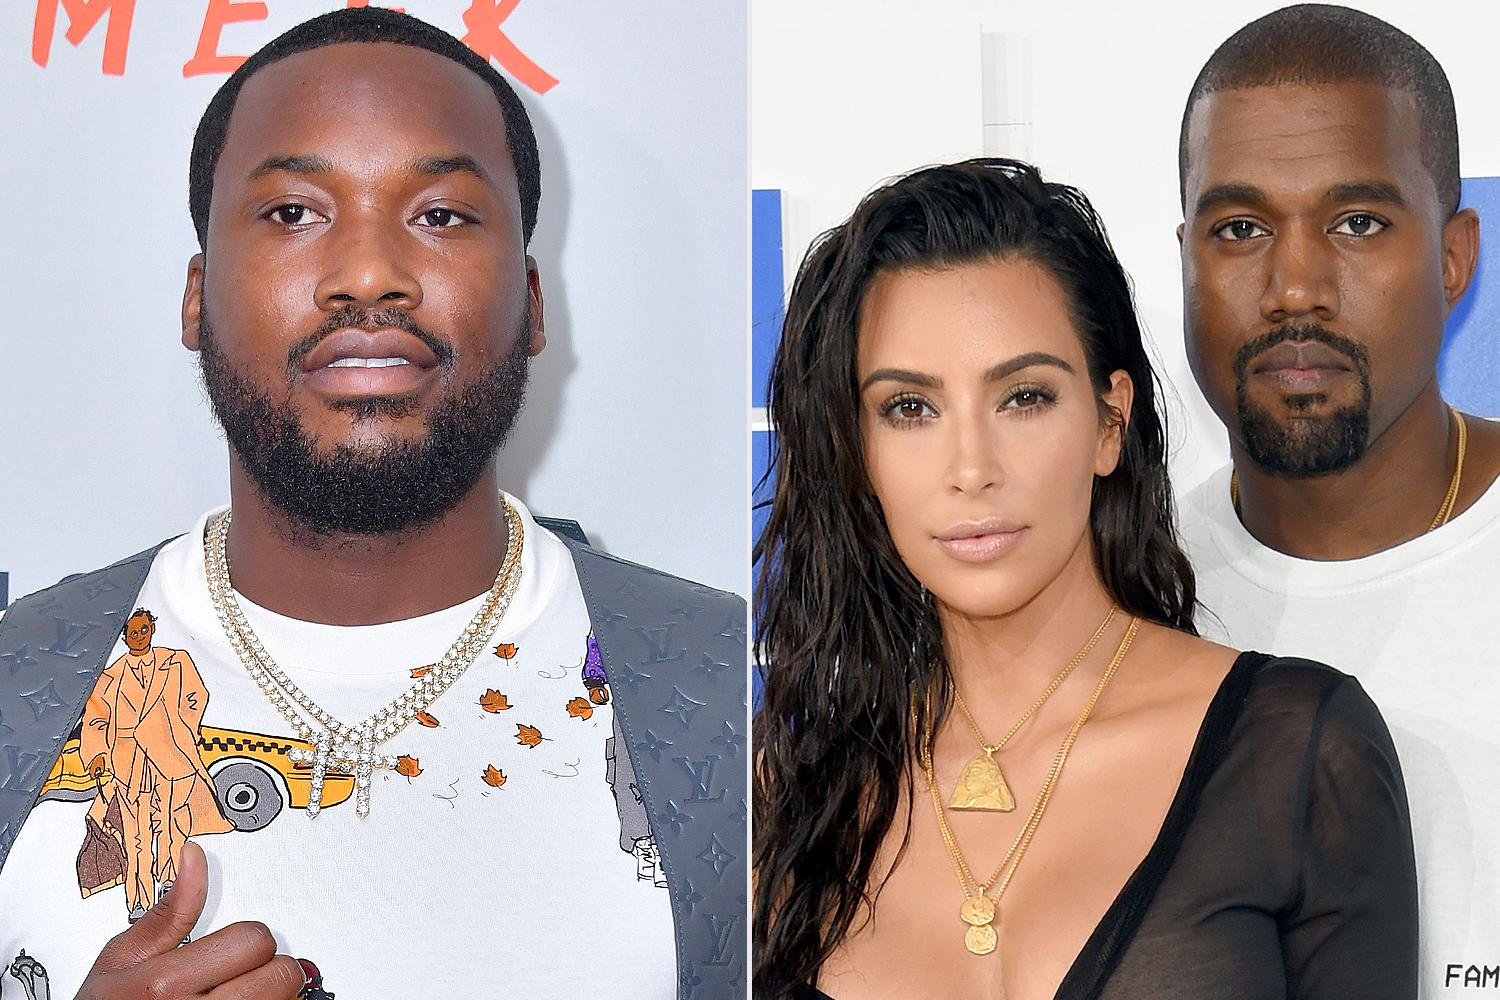 KUWTK: Kanye West Reportedly Felt 'Disrespected' By Wife Kim Kardashian's Hotel Meeting With Meek Mill - Details!